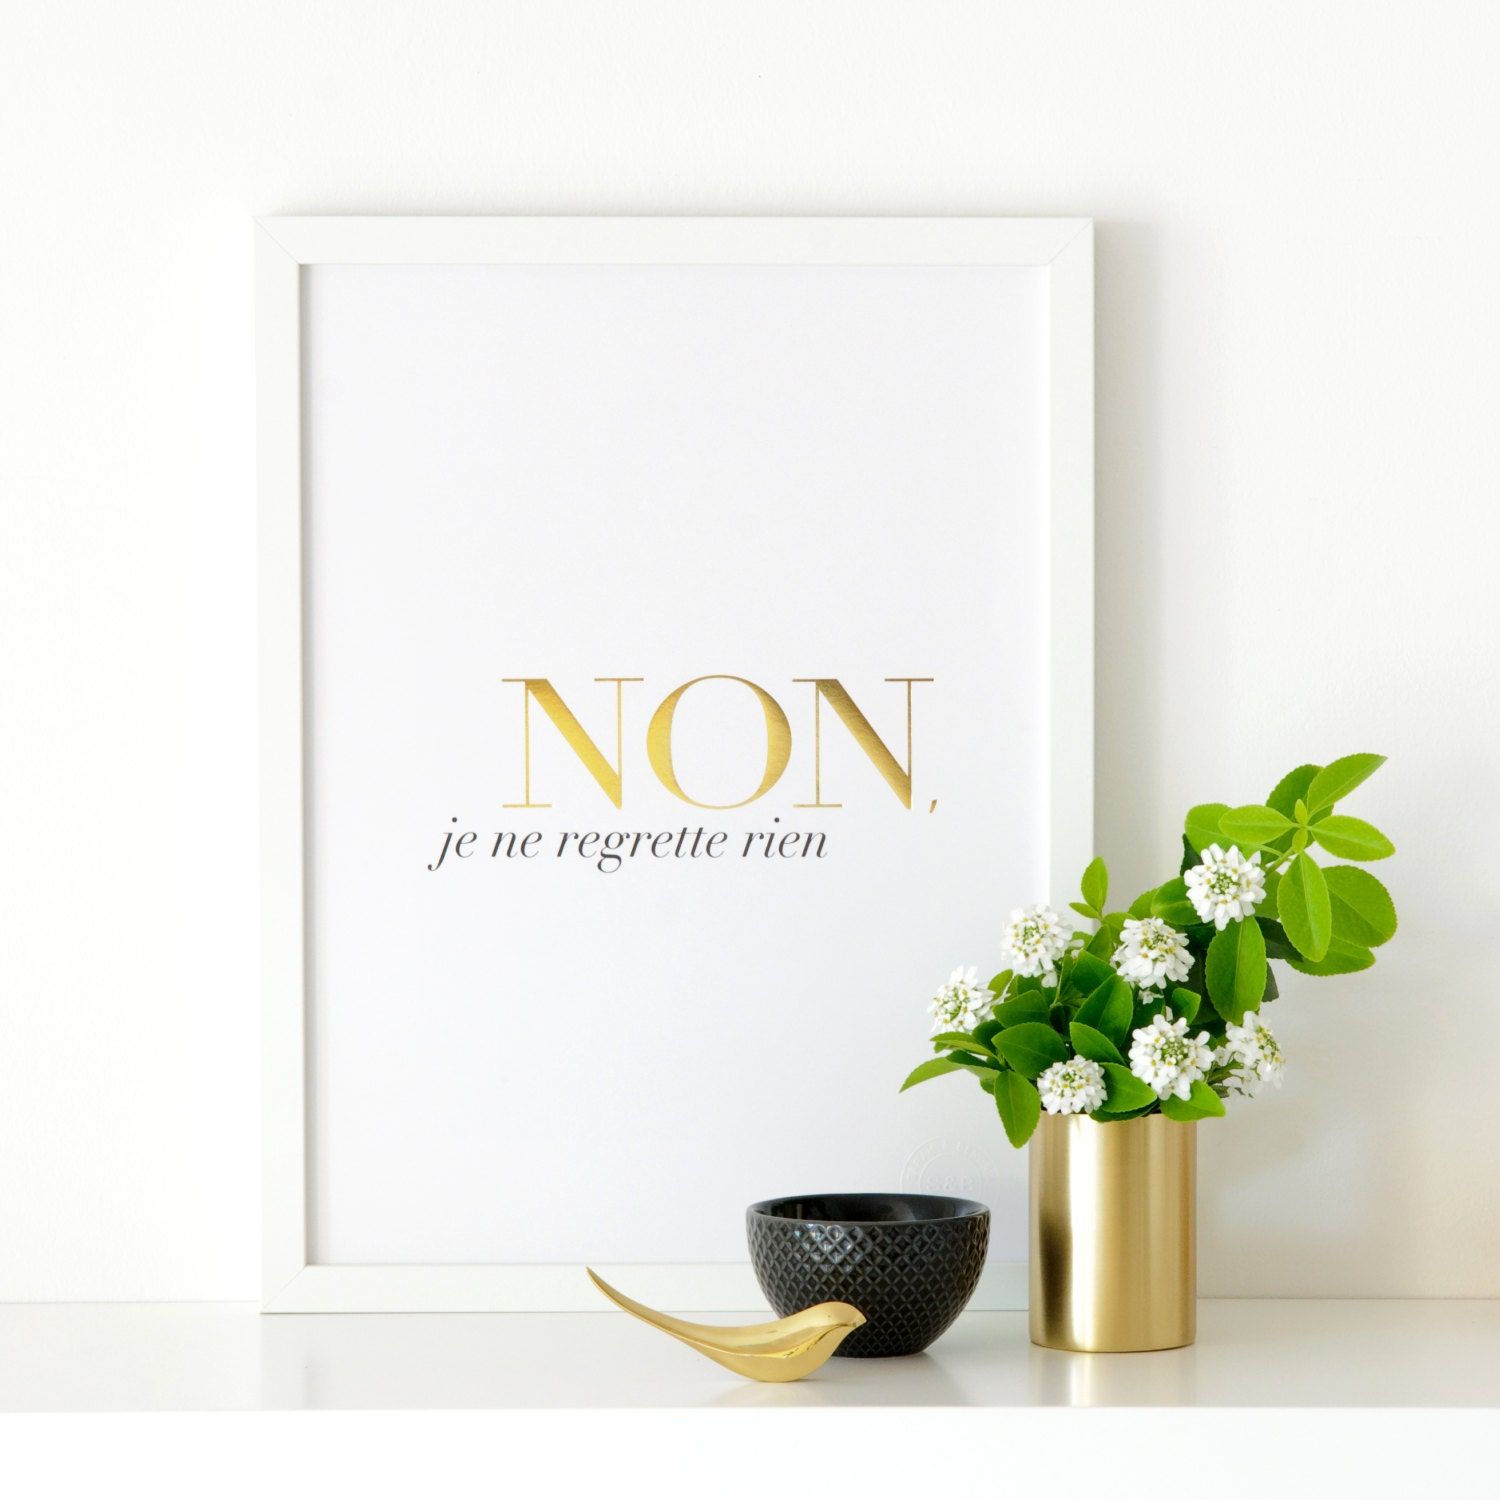 French Tattoo Je Ne Regrette Rien No Regrets: Non Je Ne Regrette Rien White Gold Foil By Sarahandbendrix